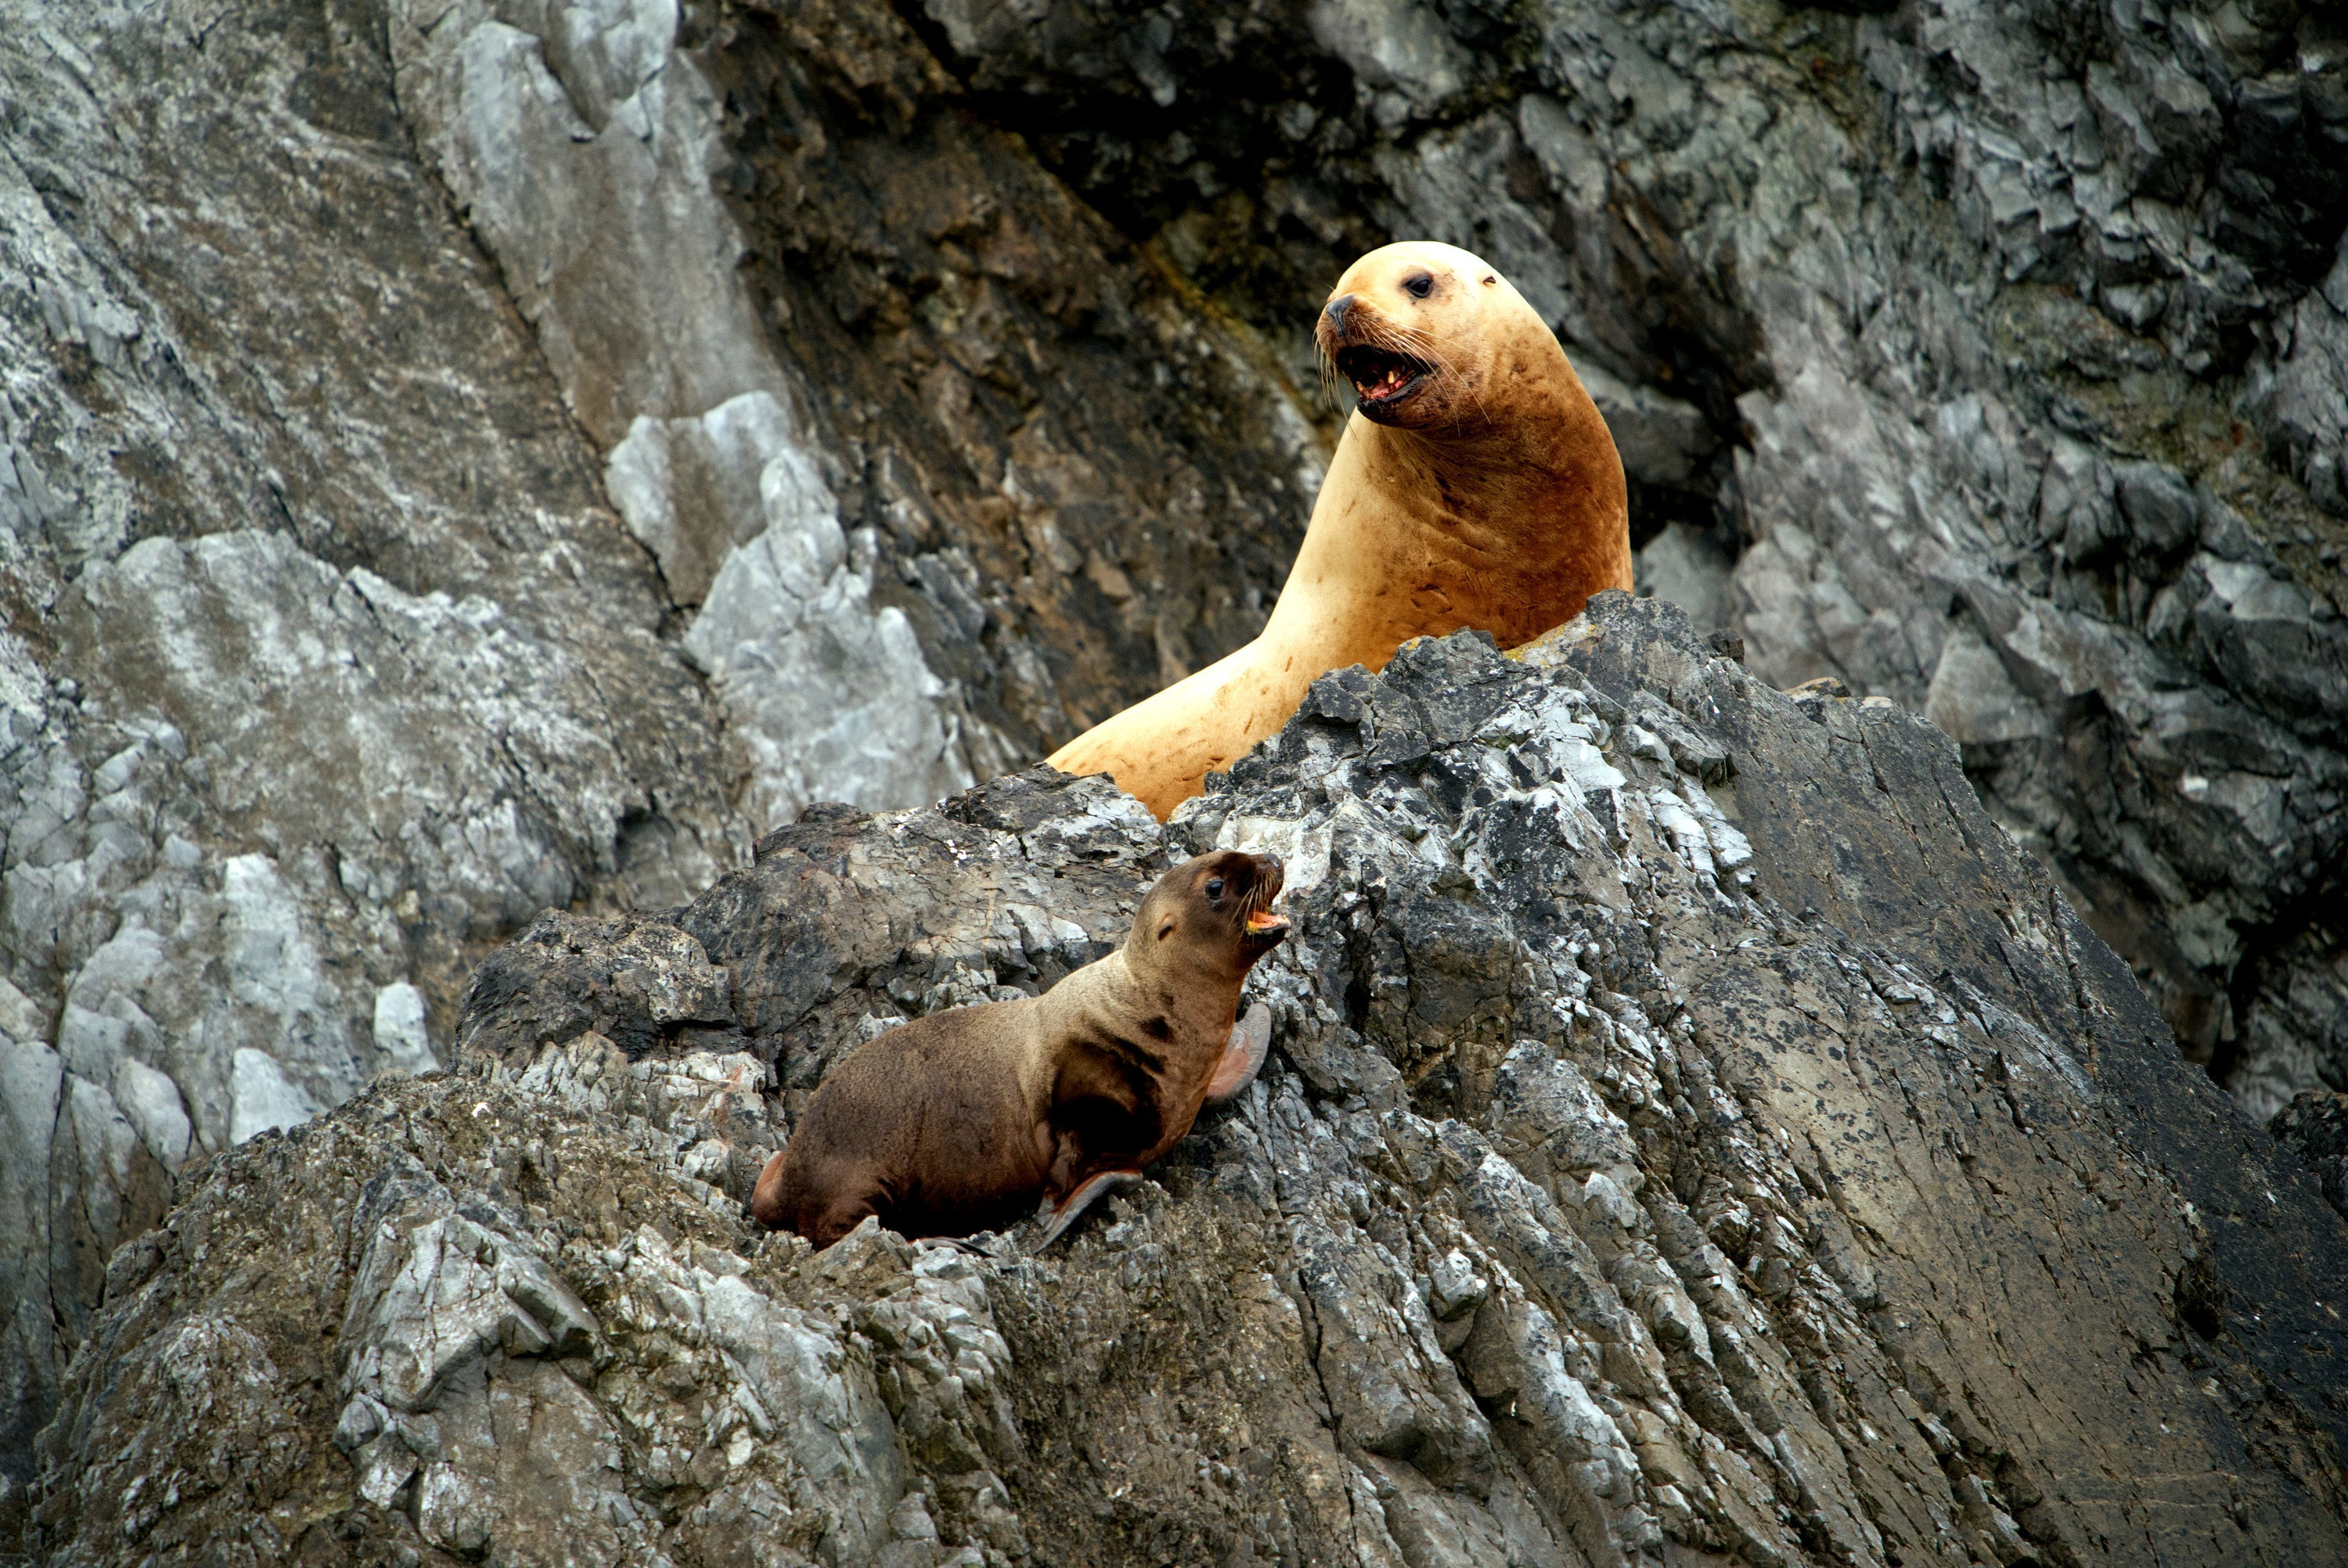 Star and sea lion pup Luna on the rocks of Triangle Island. (National Geographic for Disney+/Ryan Tidman)